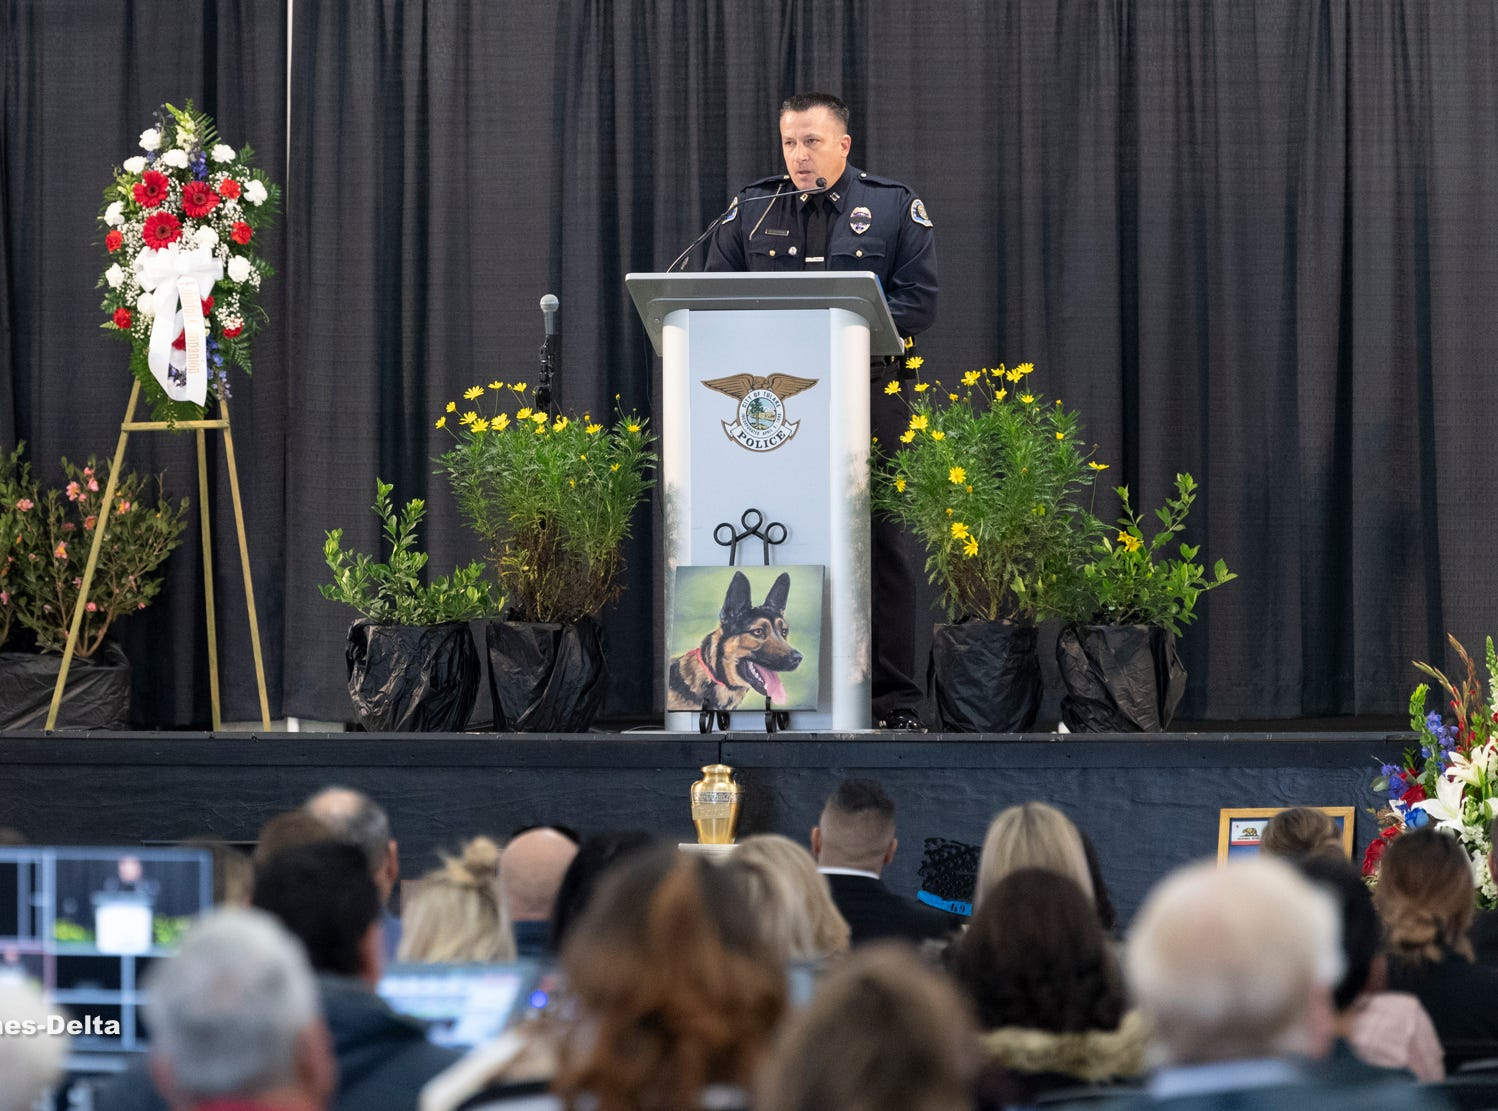 Tulare Interim Police Chief Matt Machado speaks during a memorial service for Tulare Police K-9 Bane on Wednesday. Bane was killed during an officer-involved shooting on December 9 of last year.